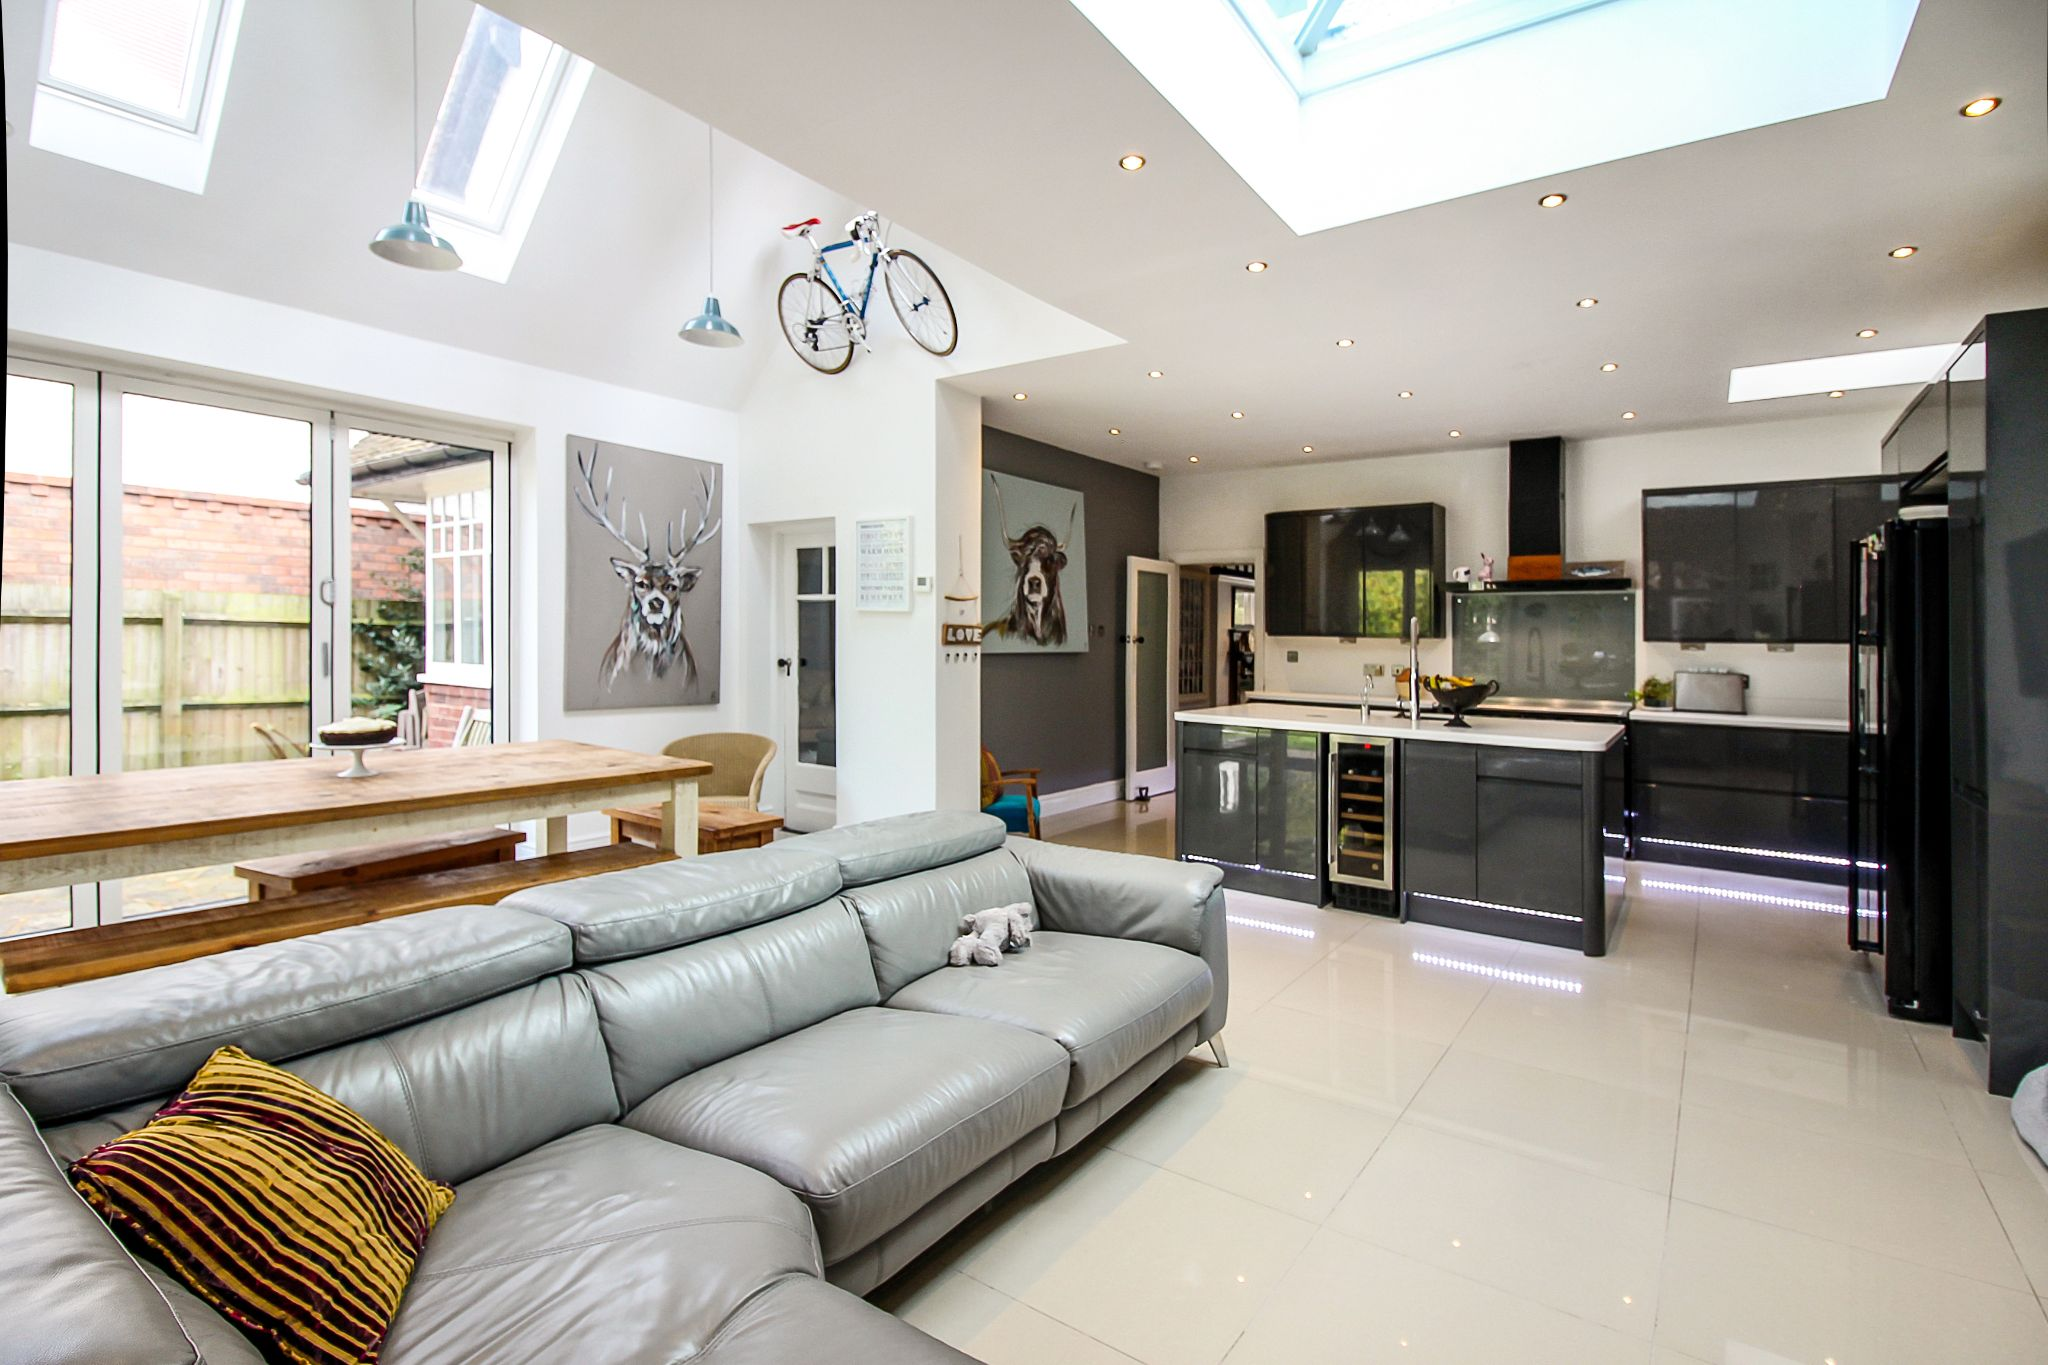 5 bedroom detached house For Sale in Solihull - Photograph 5.